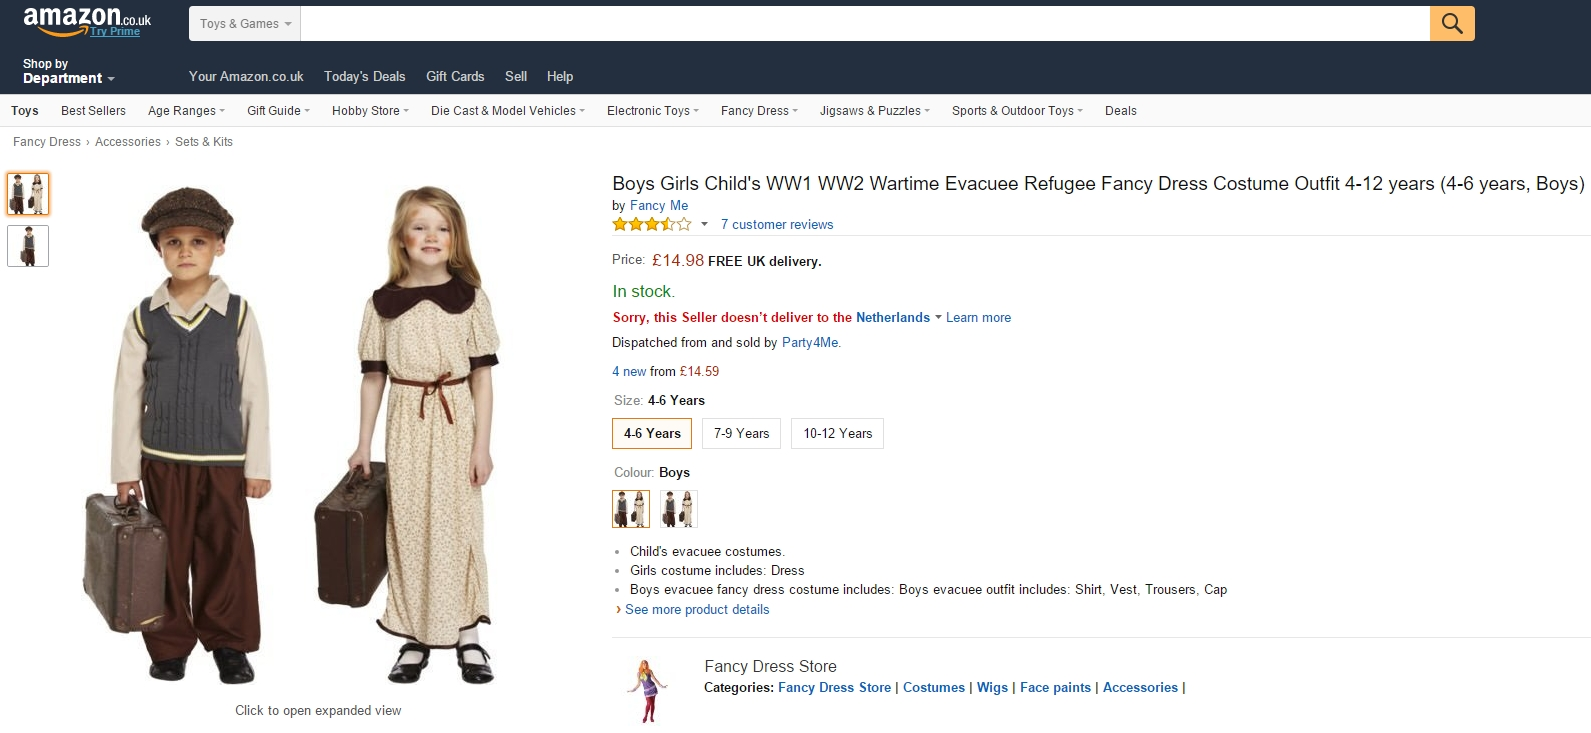 Amazon.co.uk sells refugee costumes